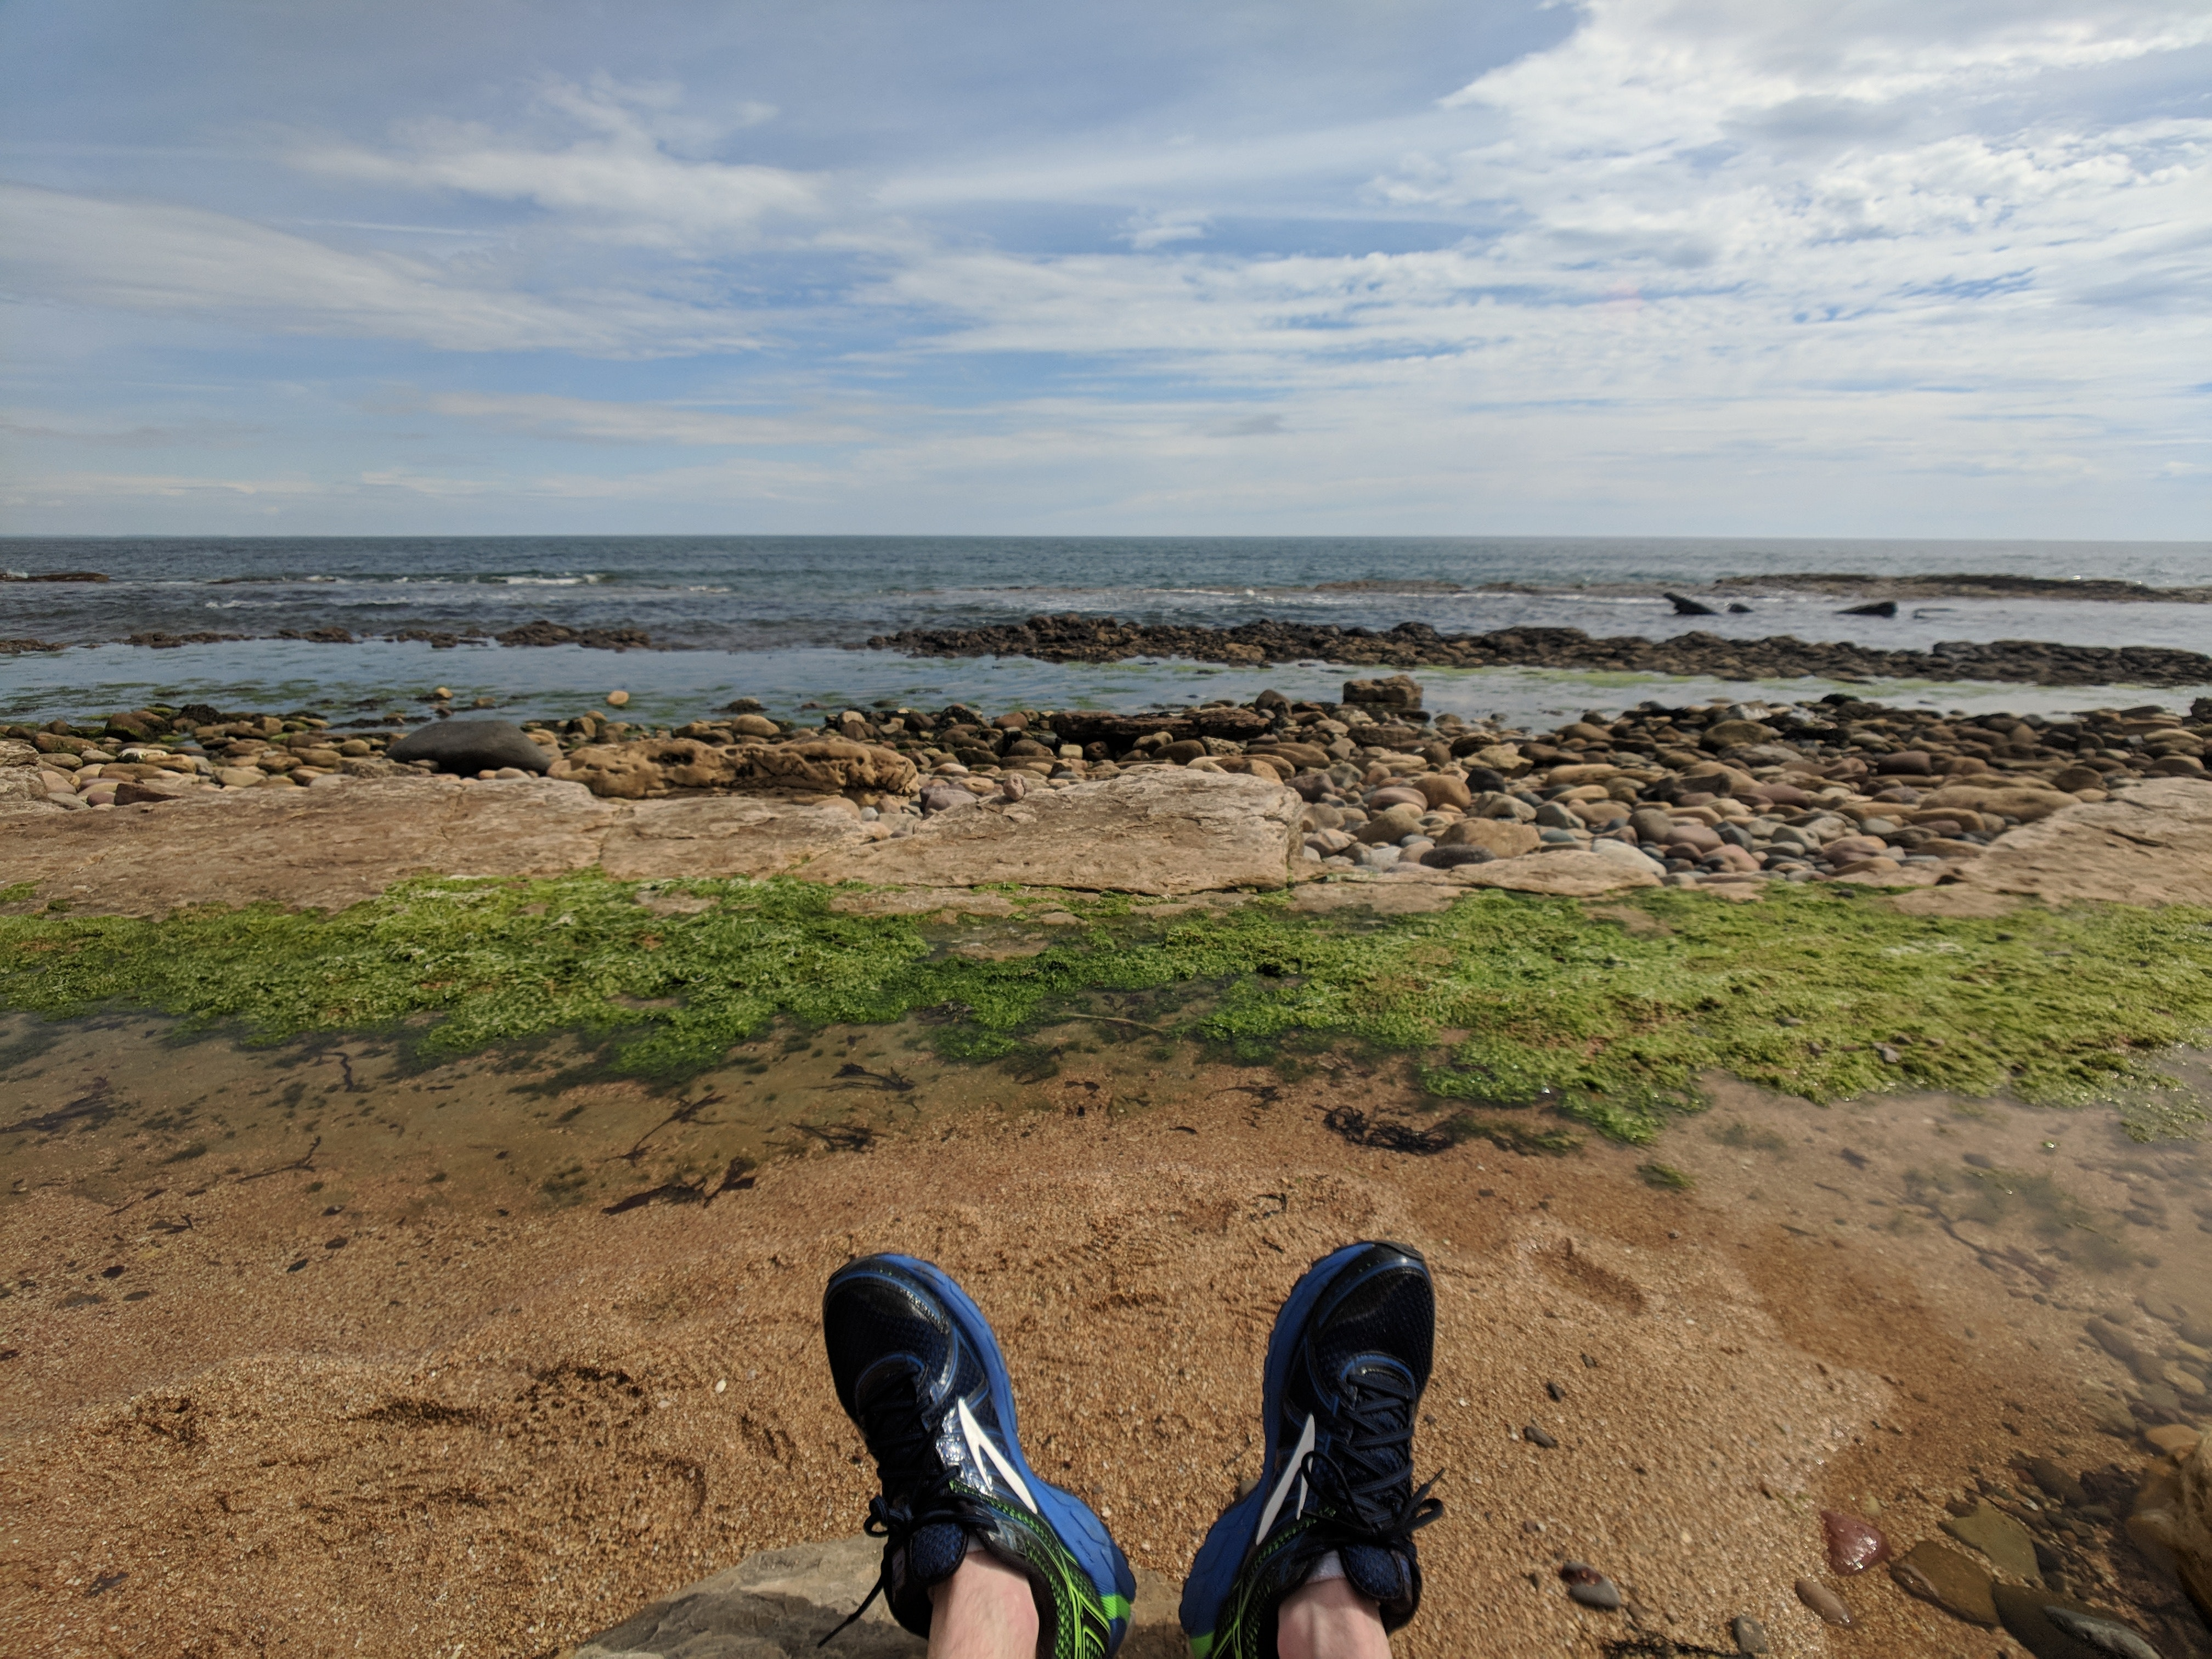 The sea and my running shoes